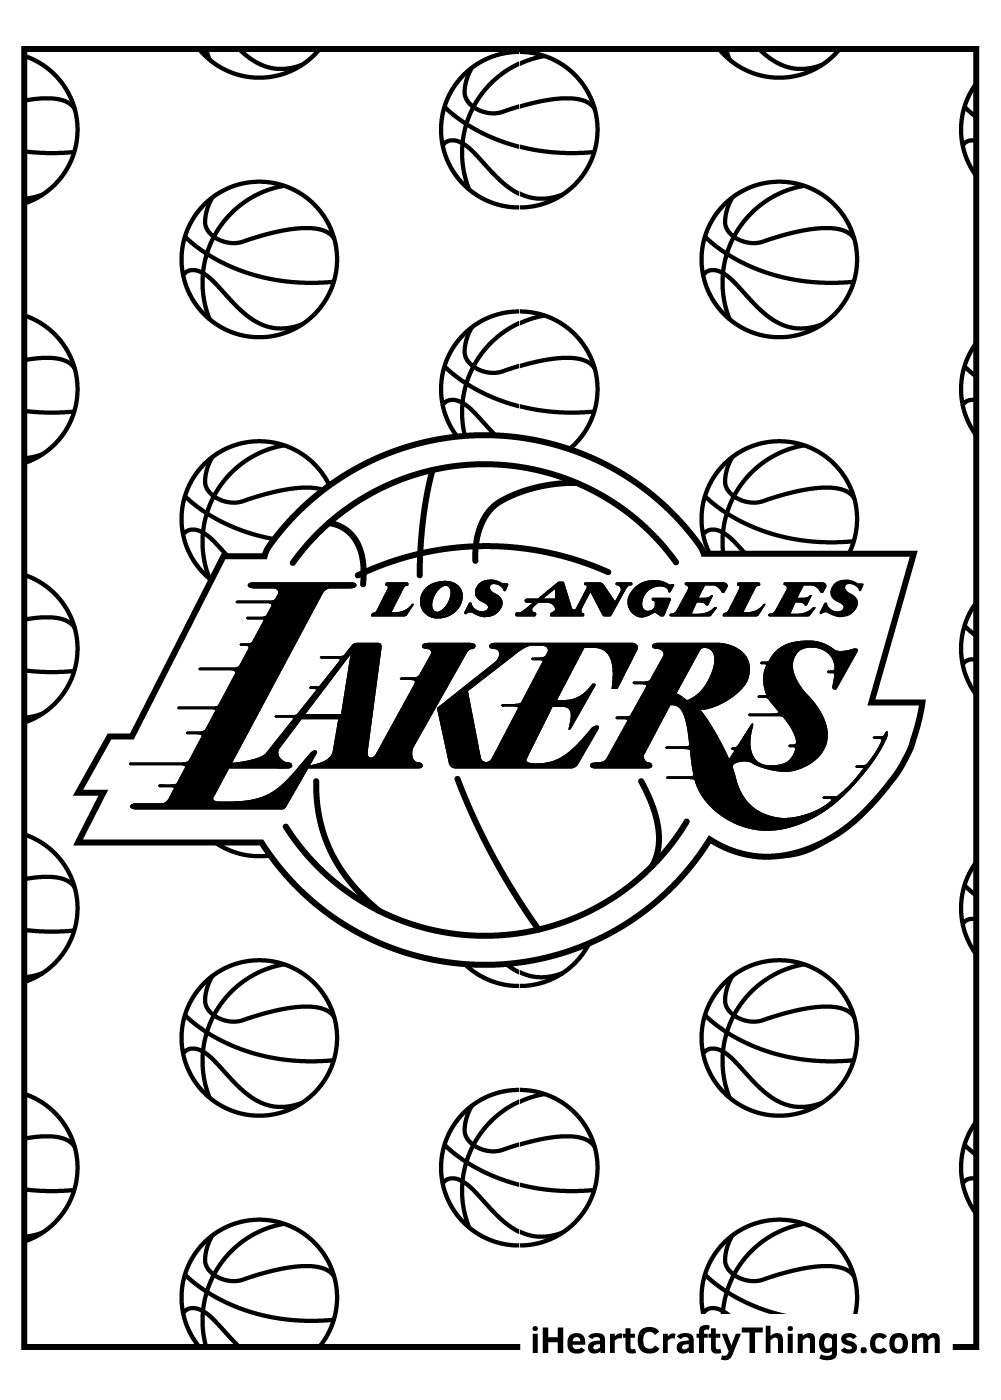 los angeles lakers NBA coloring pages free printable